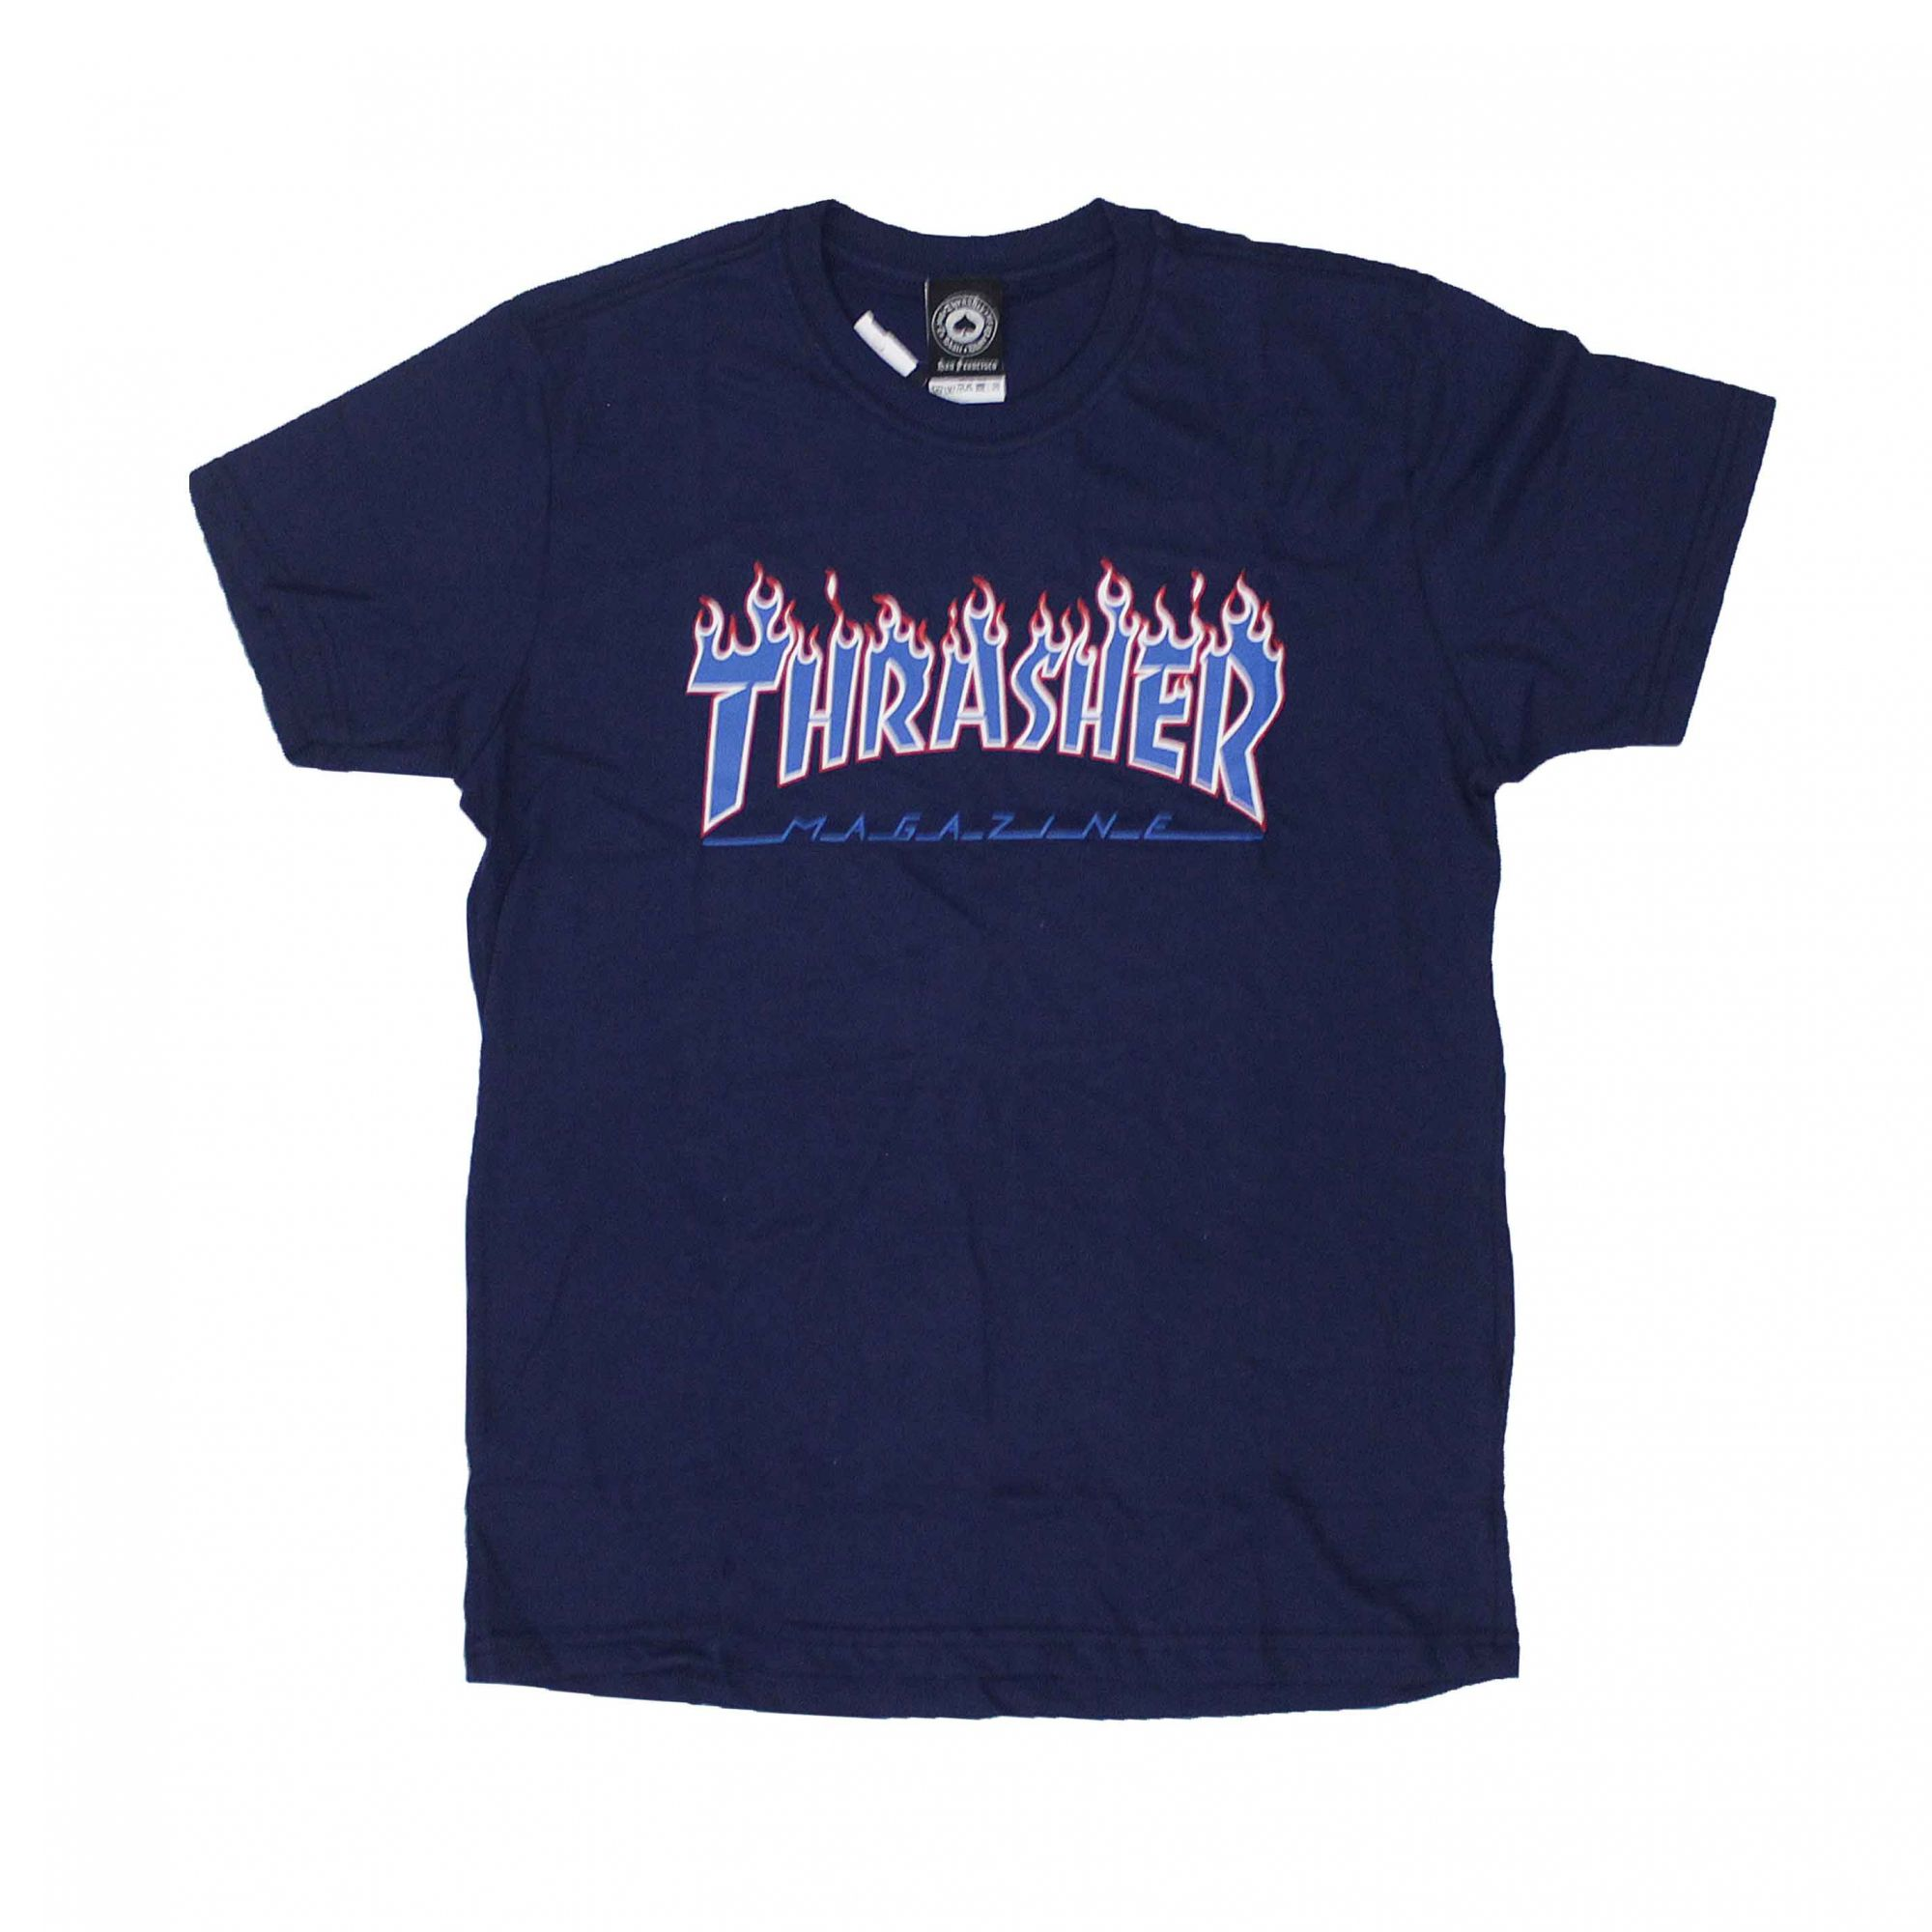 Camiseta Thrasher Magazine Patriot Flame Azul Marinho